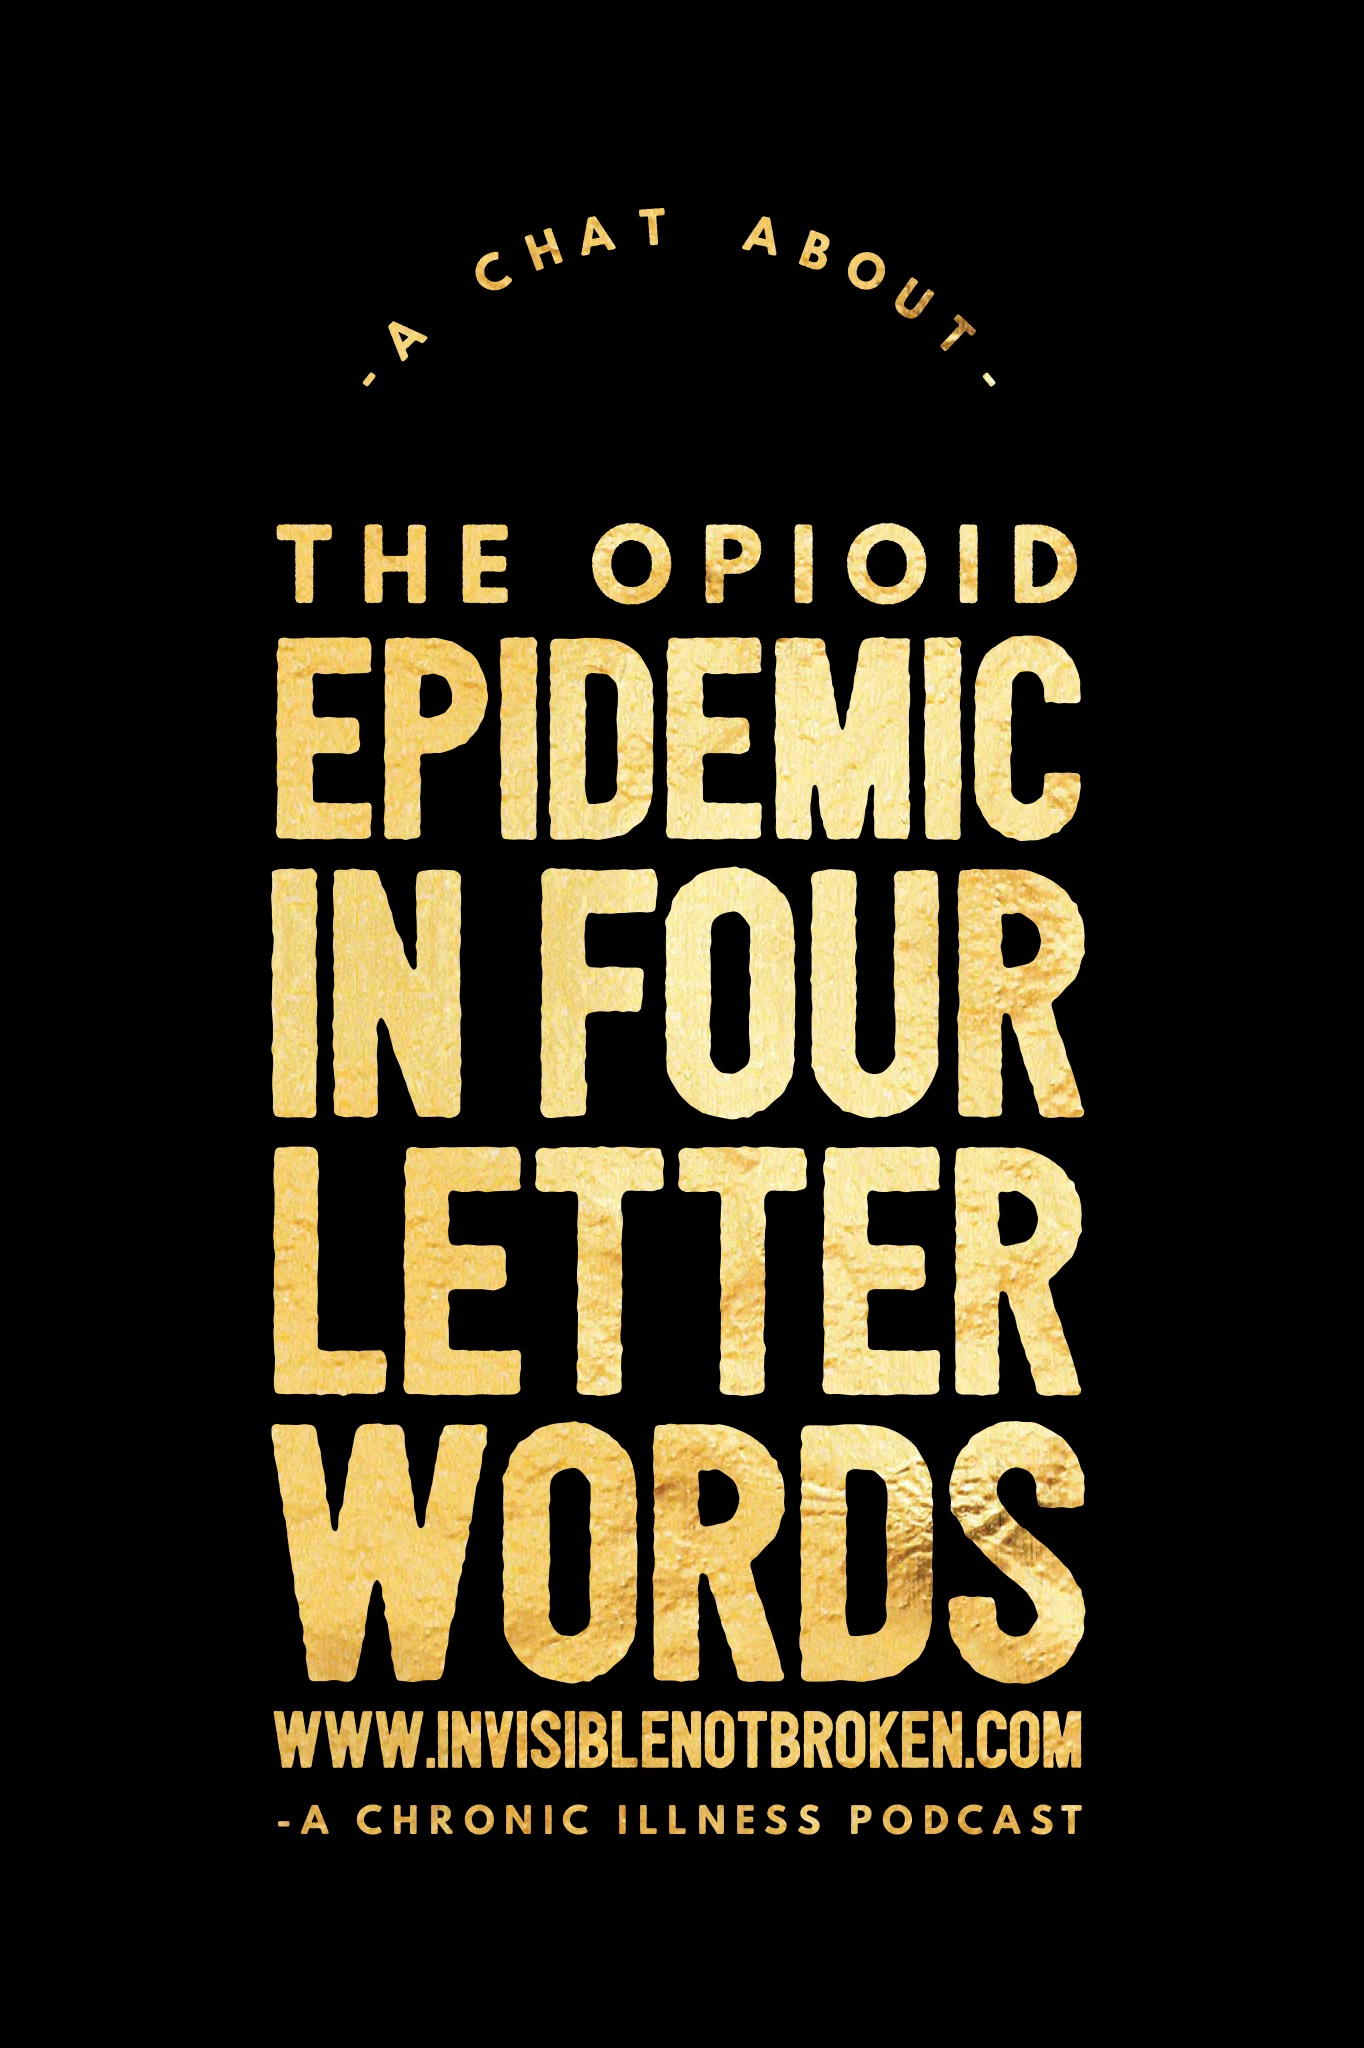 The Opioid Epidemic In Four Letter Words